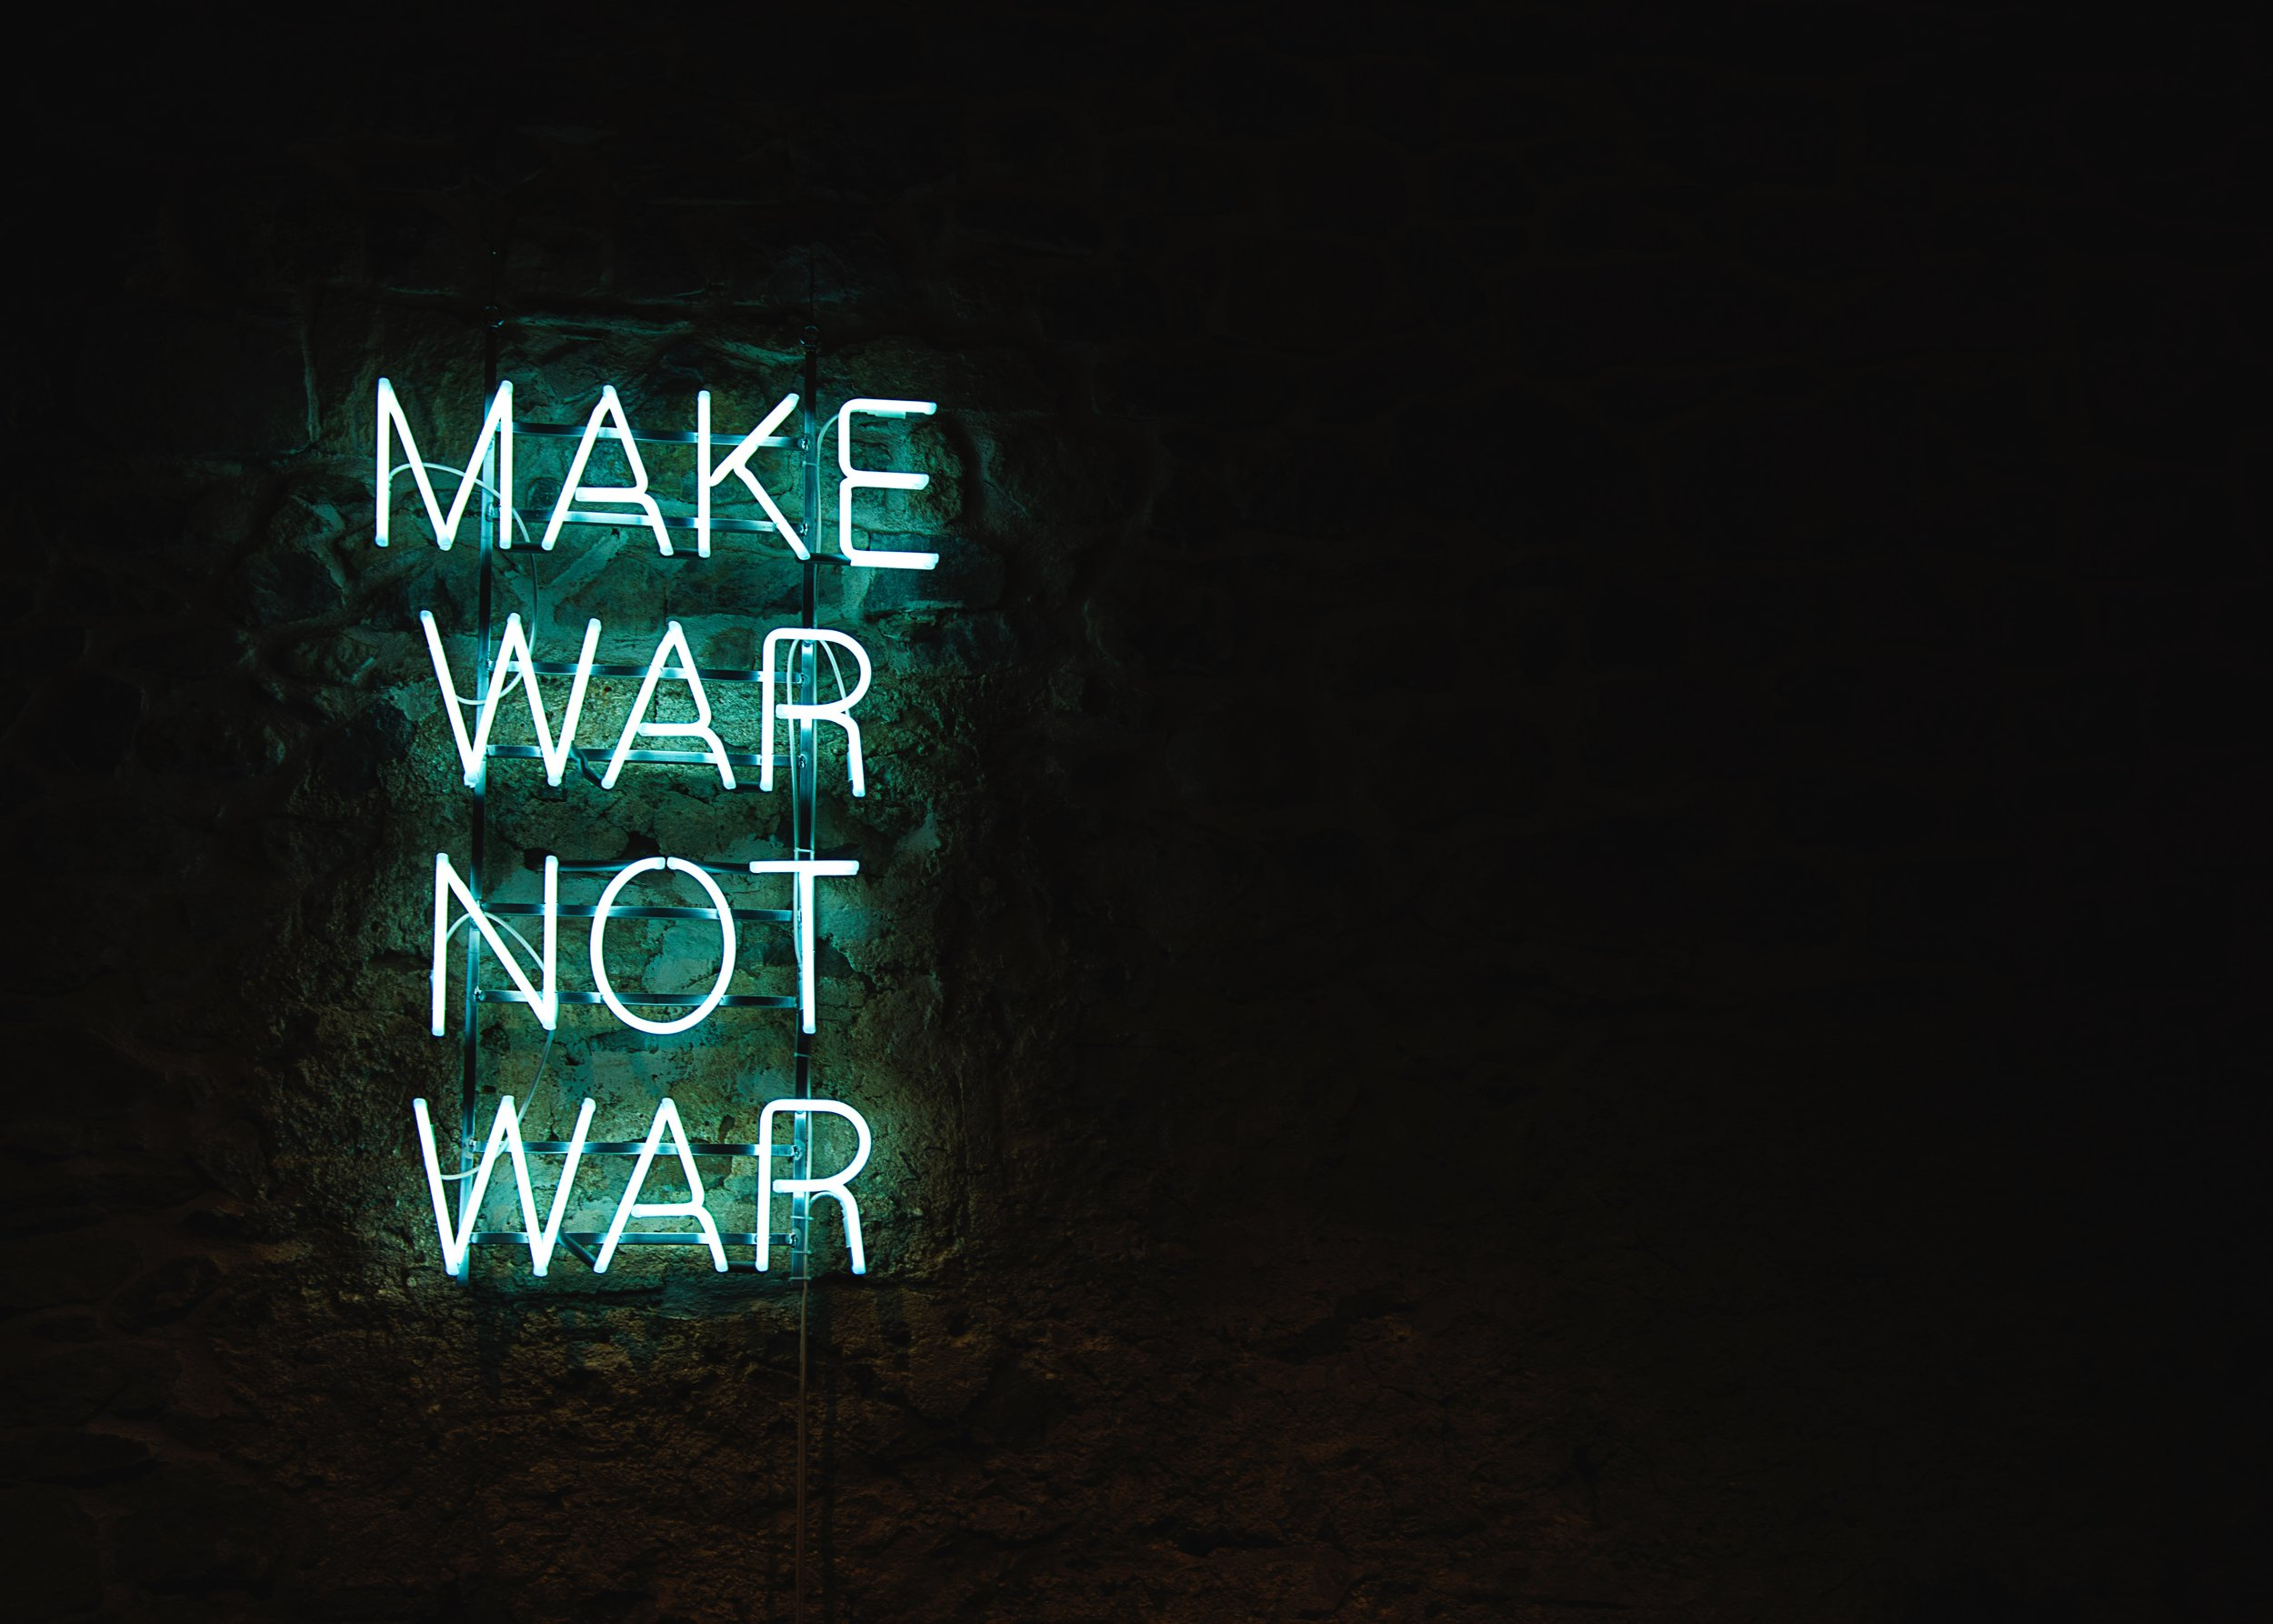 How can we make war not war?